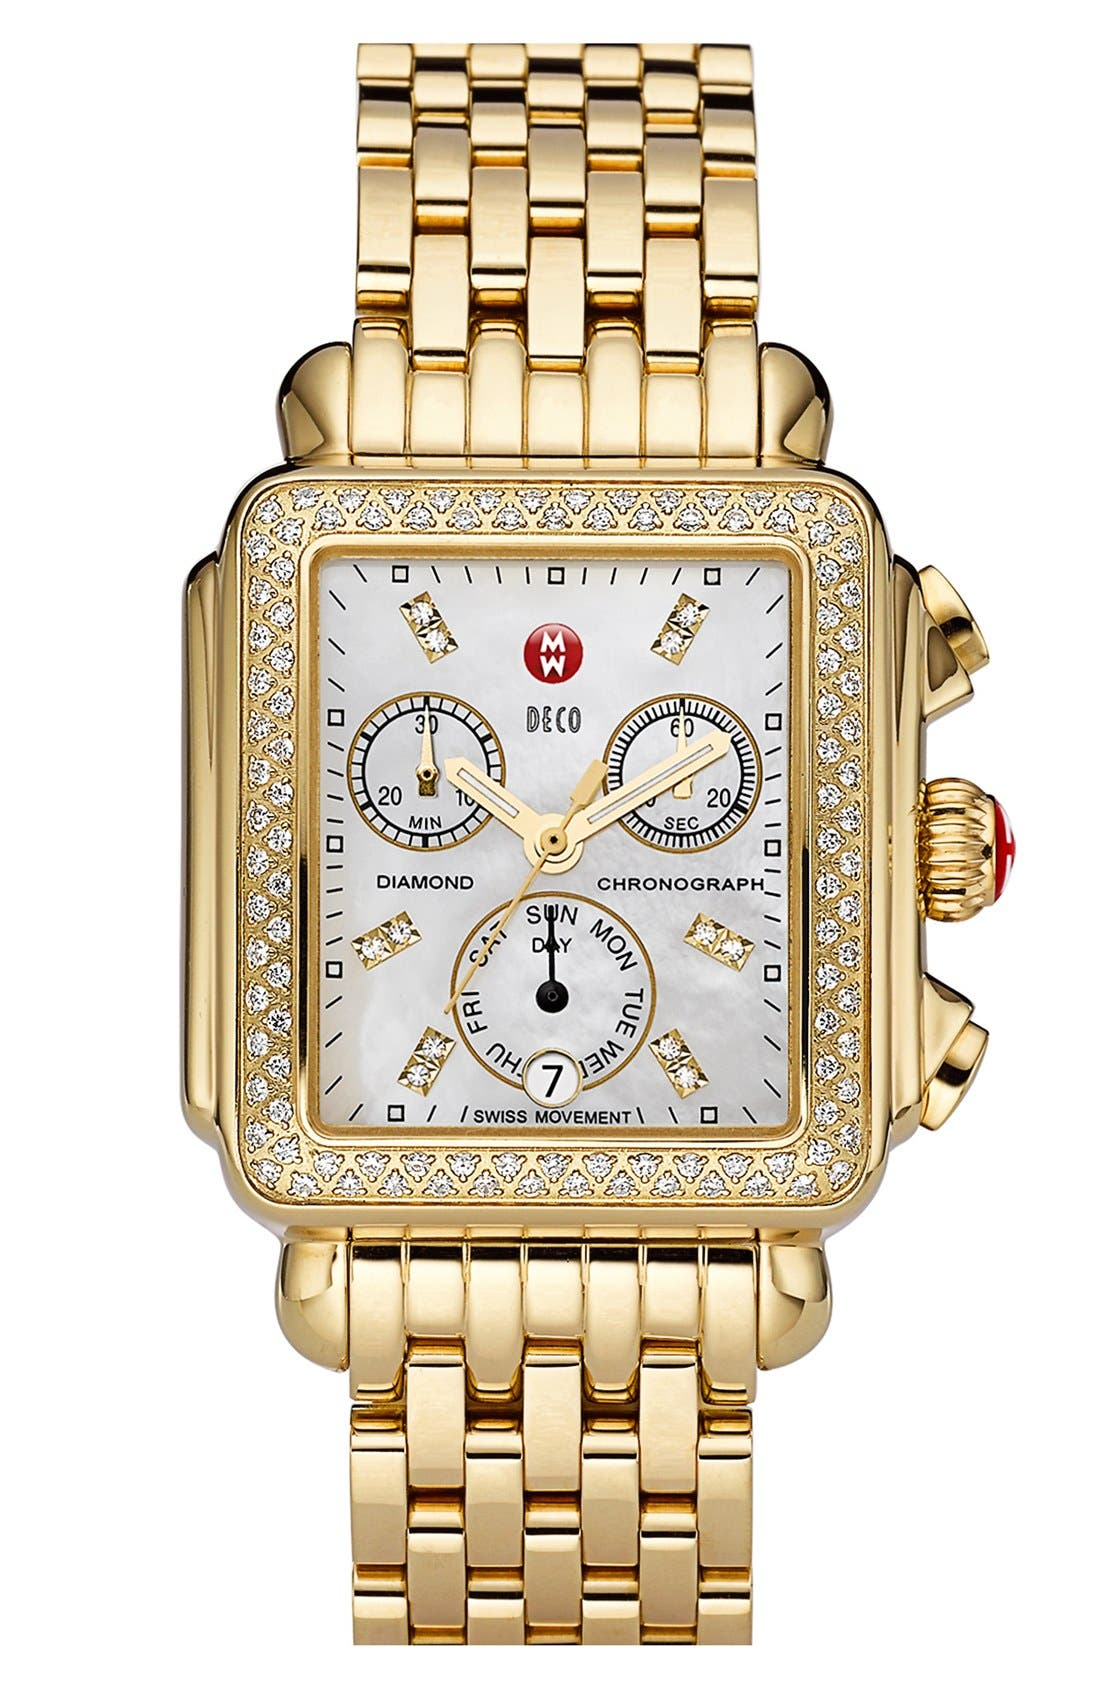 MICHELE, Deco Diamond Diamond Dial Gold Plated Watch Case, 33mm x 35mm, Alternate thumbnail 5, color, GOLD